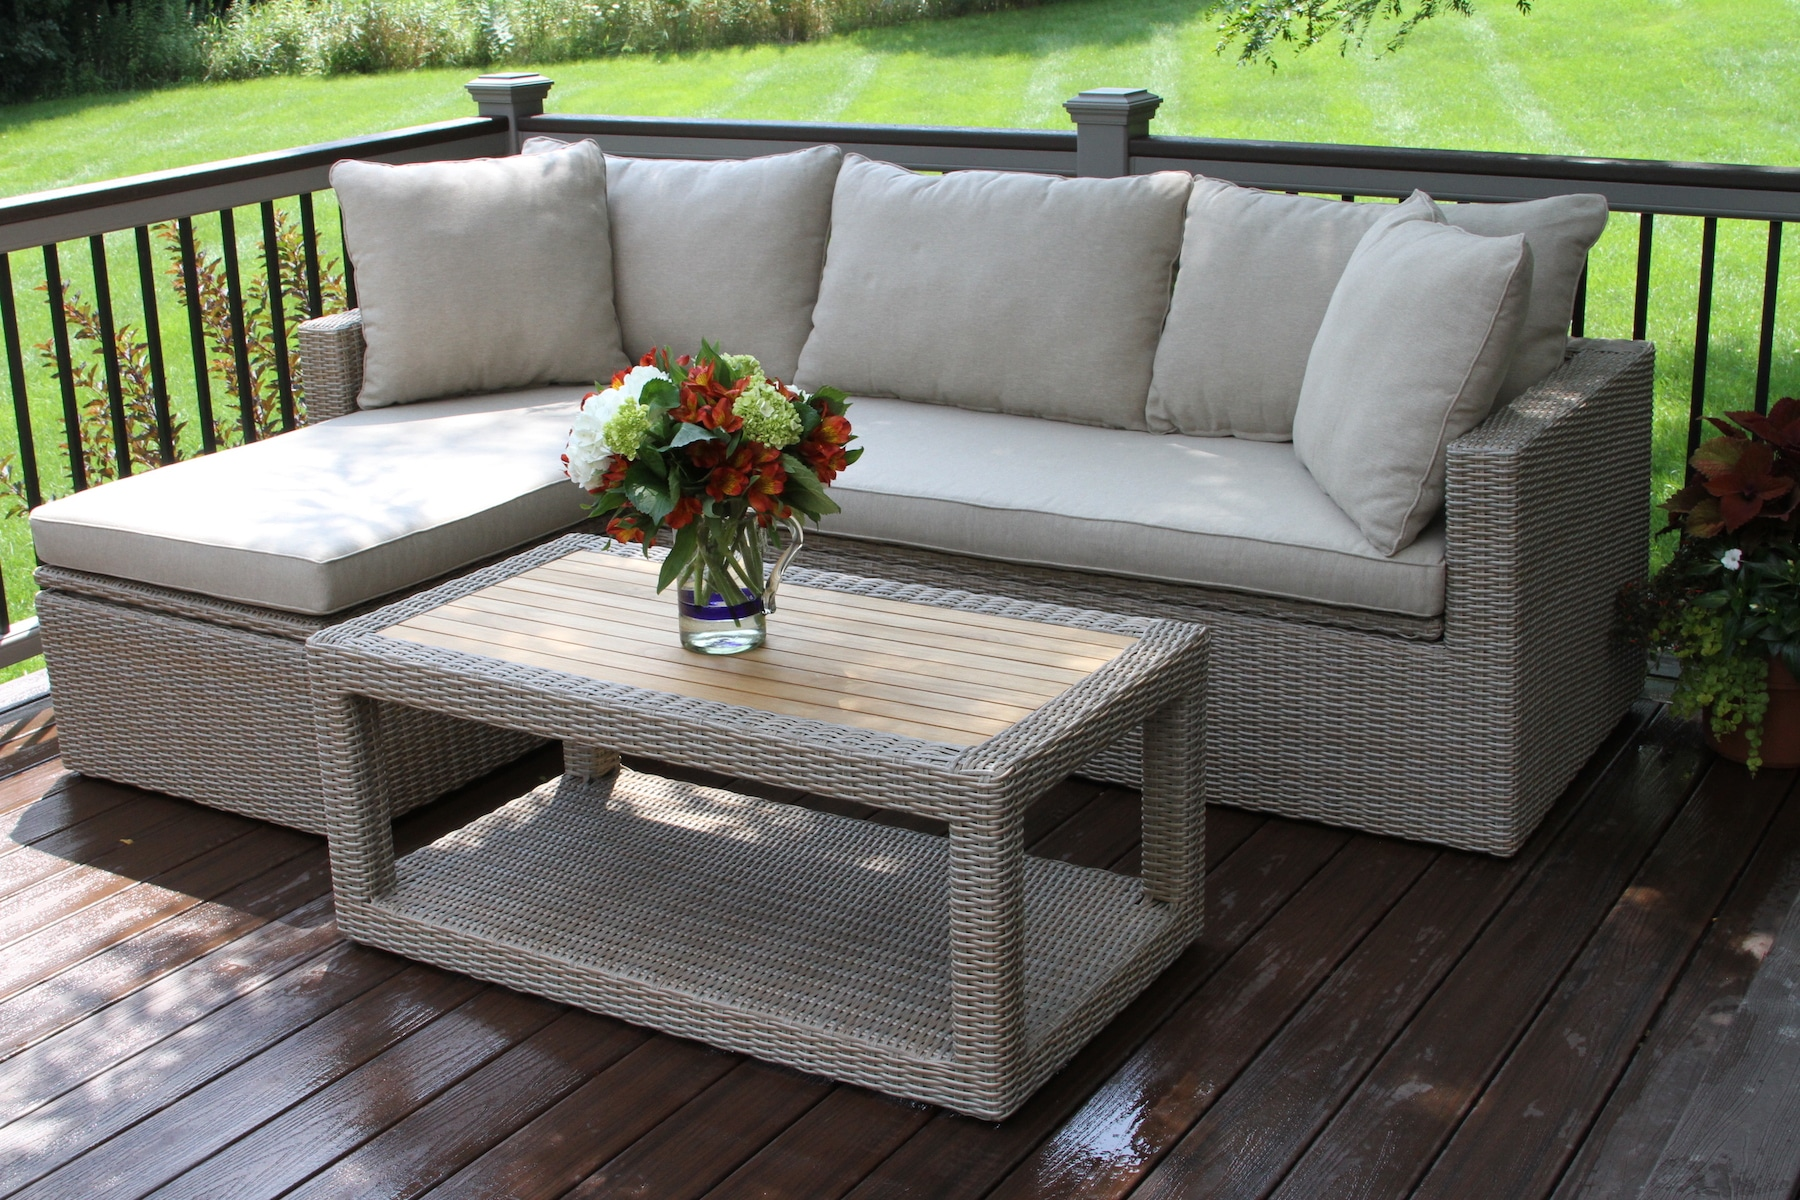 3pc Teak Ash Wicker Sectional Sofa Set With Waterproof Storage